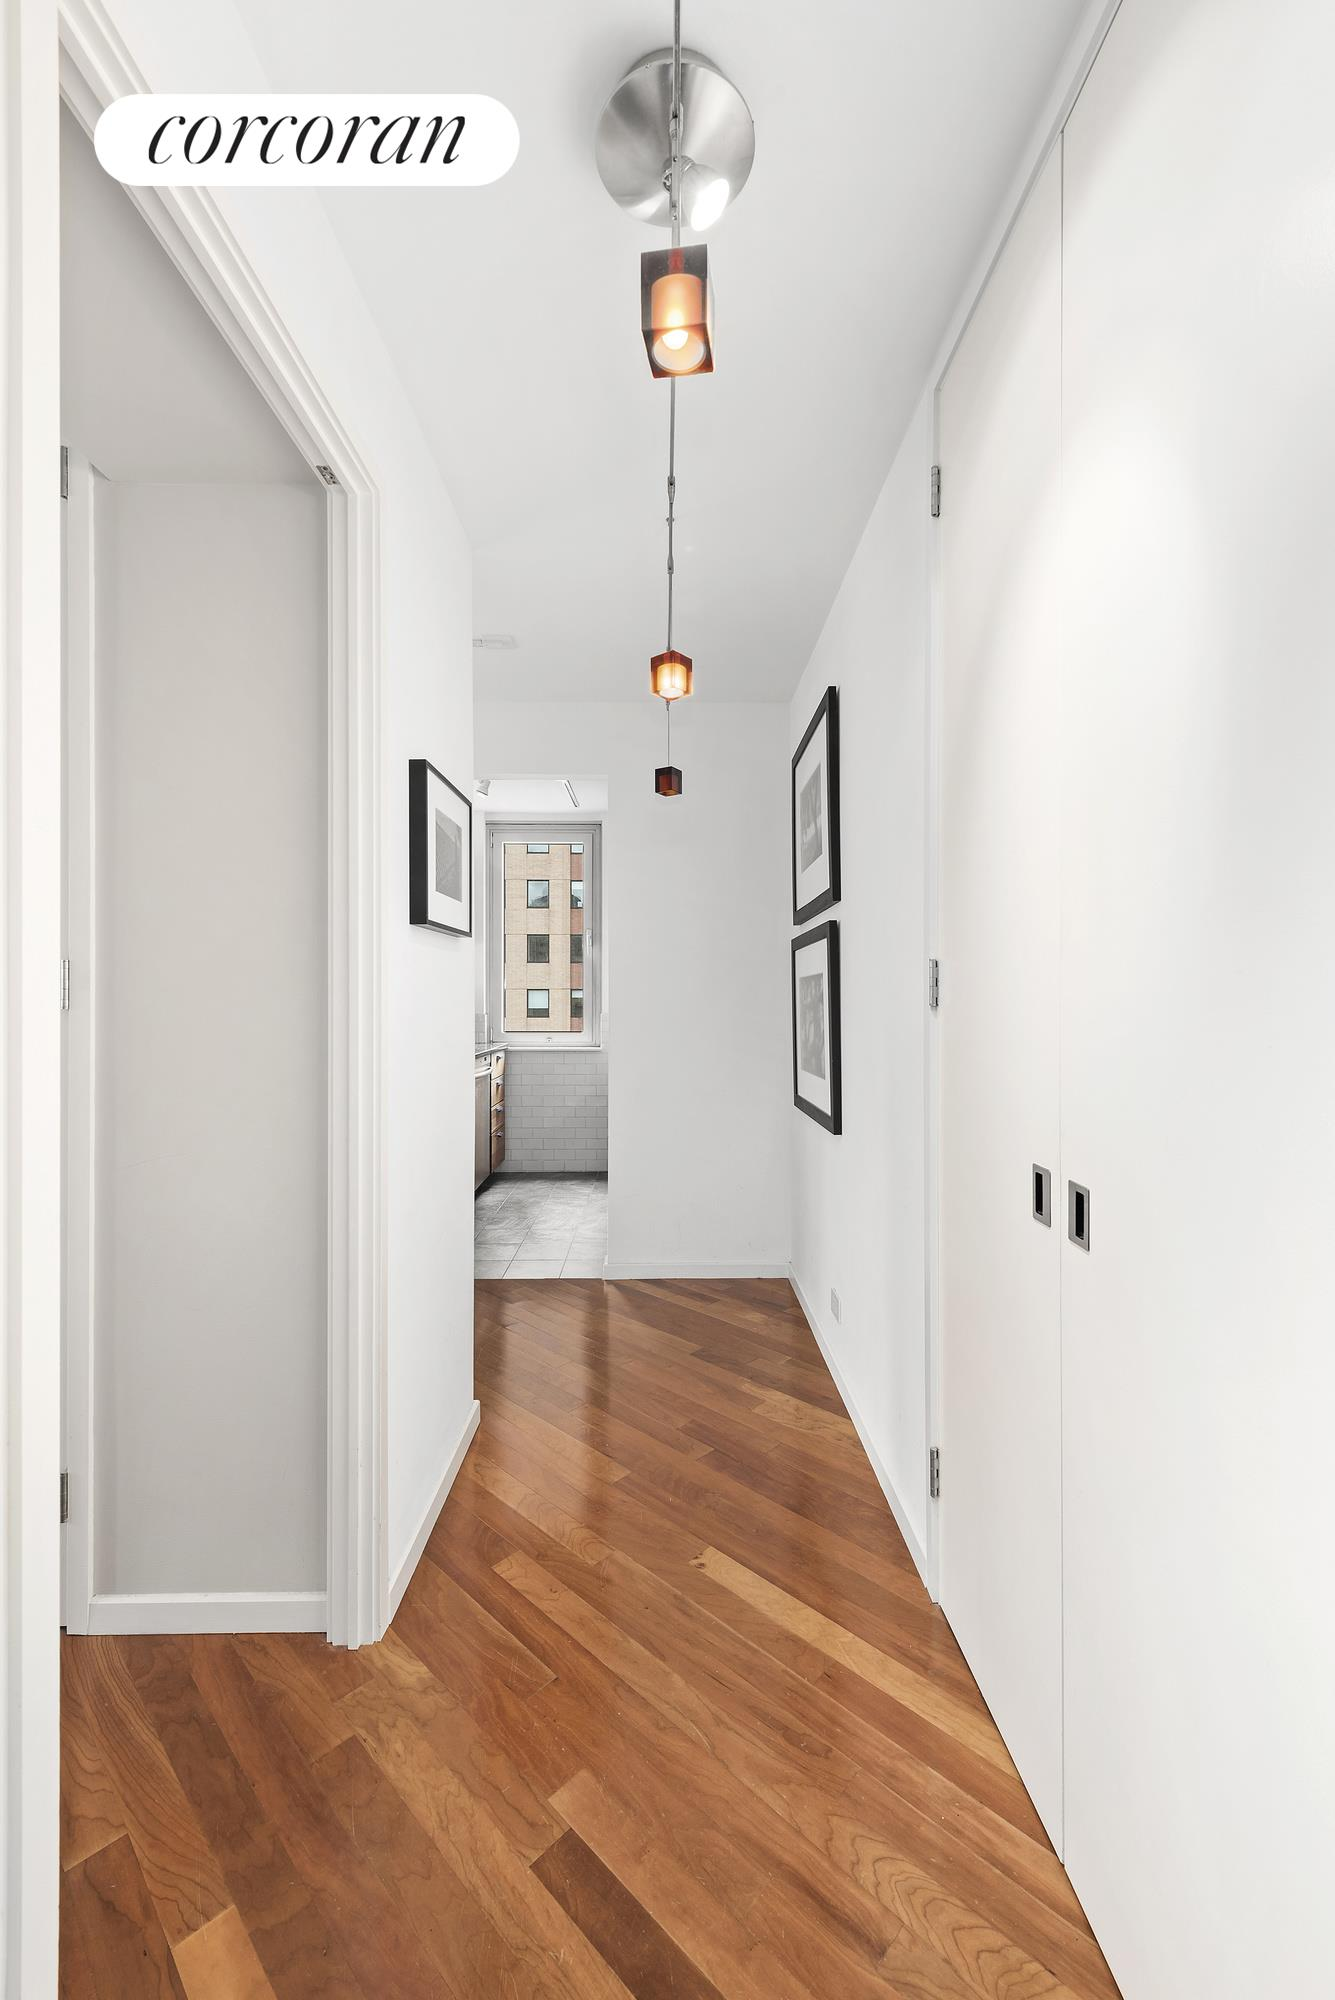 Apartment for sale at 350 West 50th Street, Apt 14i